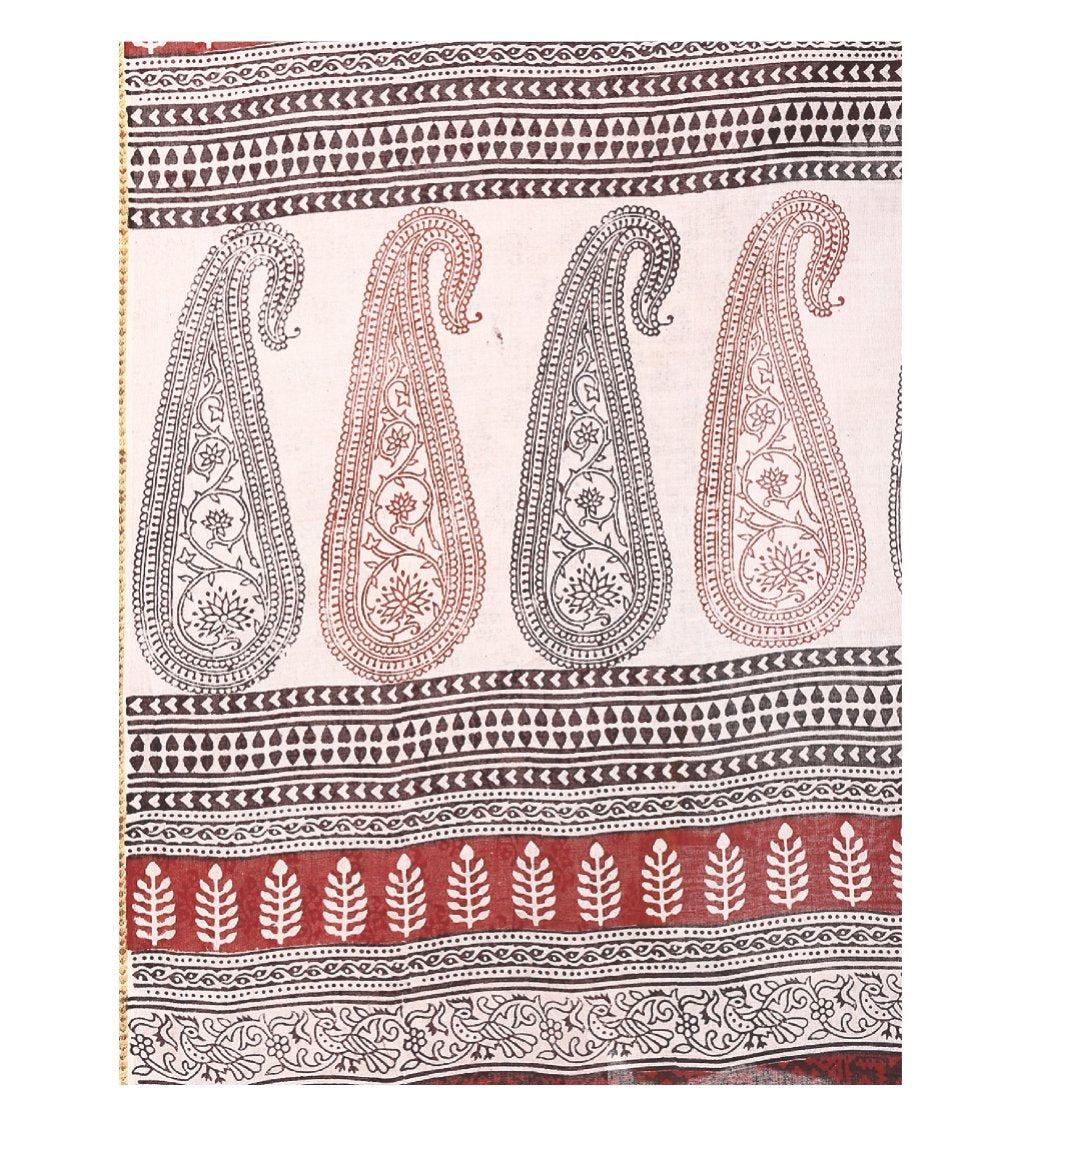 Pink Cotton Hand Block Bagh Print Handcrafted Saree-Saree-Kalakari India-ZIBASA0076-Bagh, Cotton, Geographical Indication, Hand Blocks, Hand Crafted, Heritage Prints, Natural Dyes, Sarees, Sustainable Fabrics-[Linen,Ethnic,wear,Fashionista,Handloom,Handicraft,Indigo,blockprint,block,print,Cotton,Chanderi,Blue, latest,classy,party,bollywood,trendy,summer,style,traditional,formal,elegant,unique,style,hand,block,print, dabu,booti,gift,present,glamorous,affordable,collectible,Sari,Saree,printed, hol